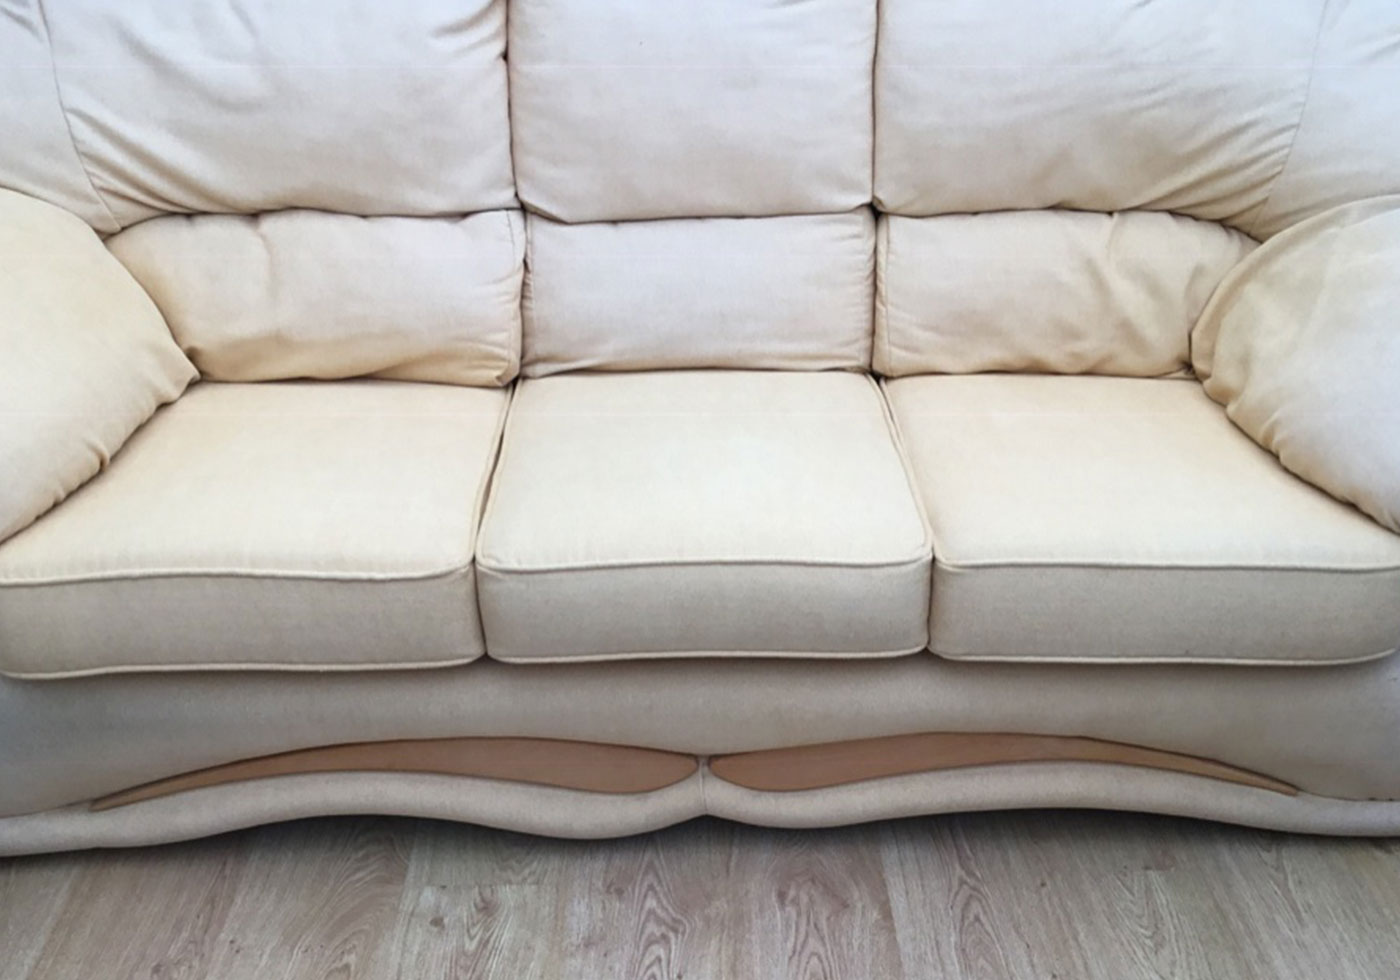 new sofa cushions